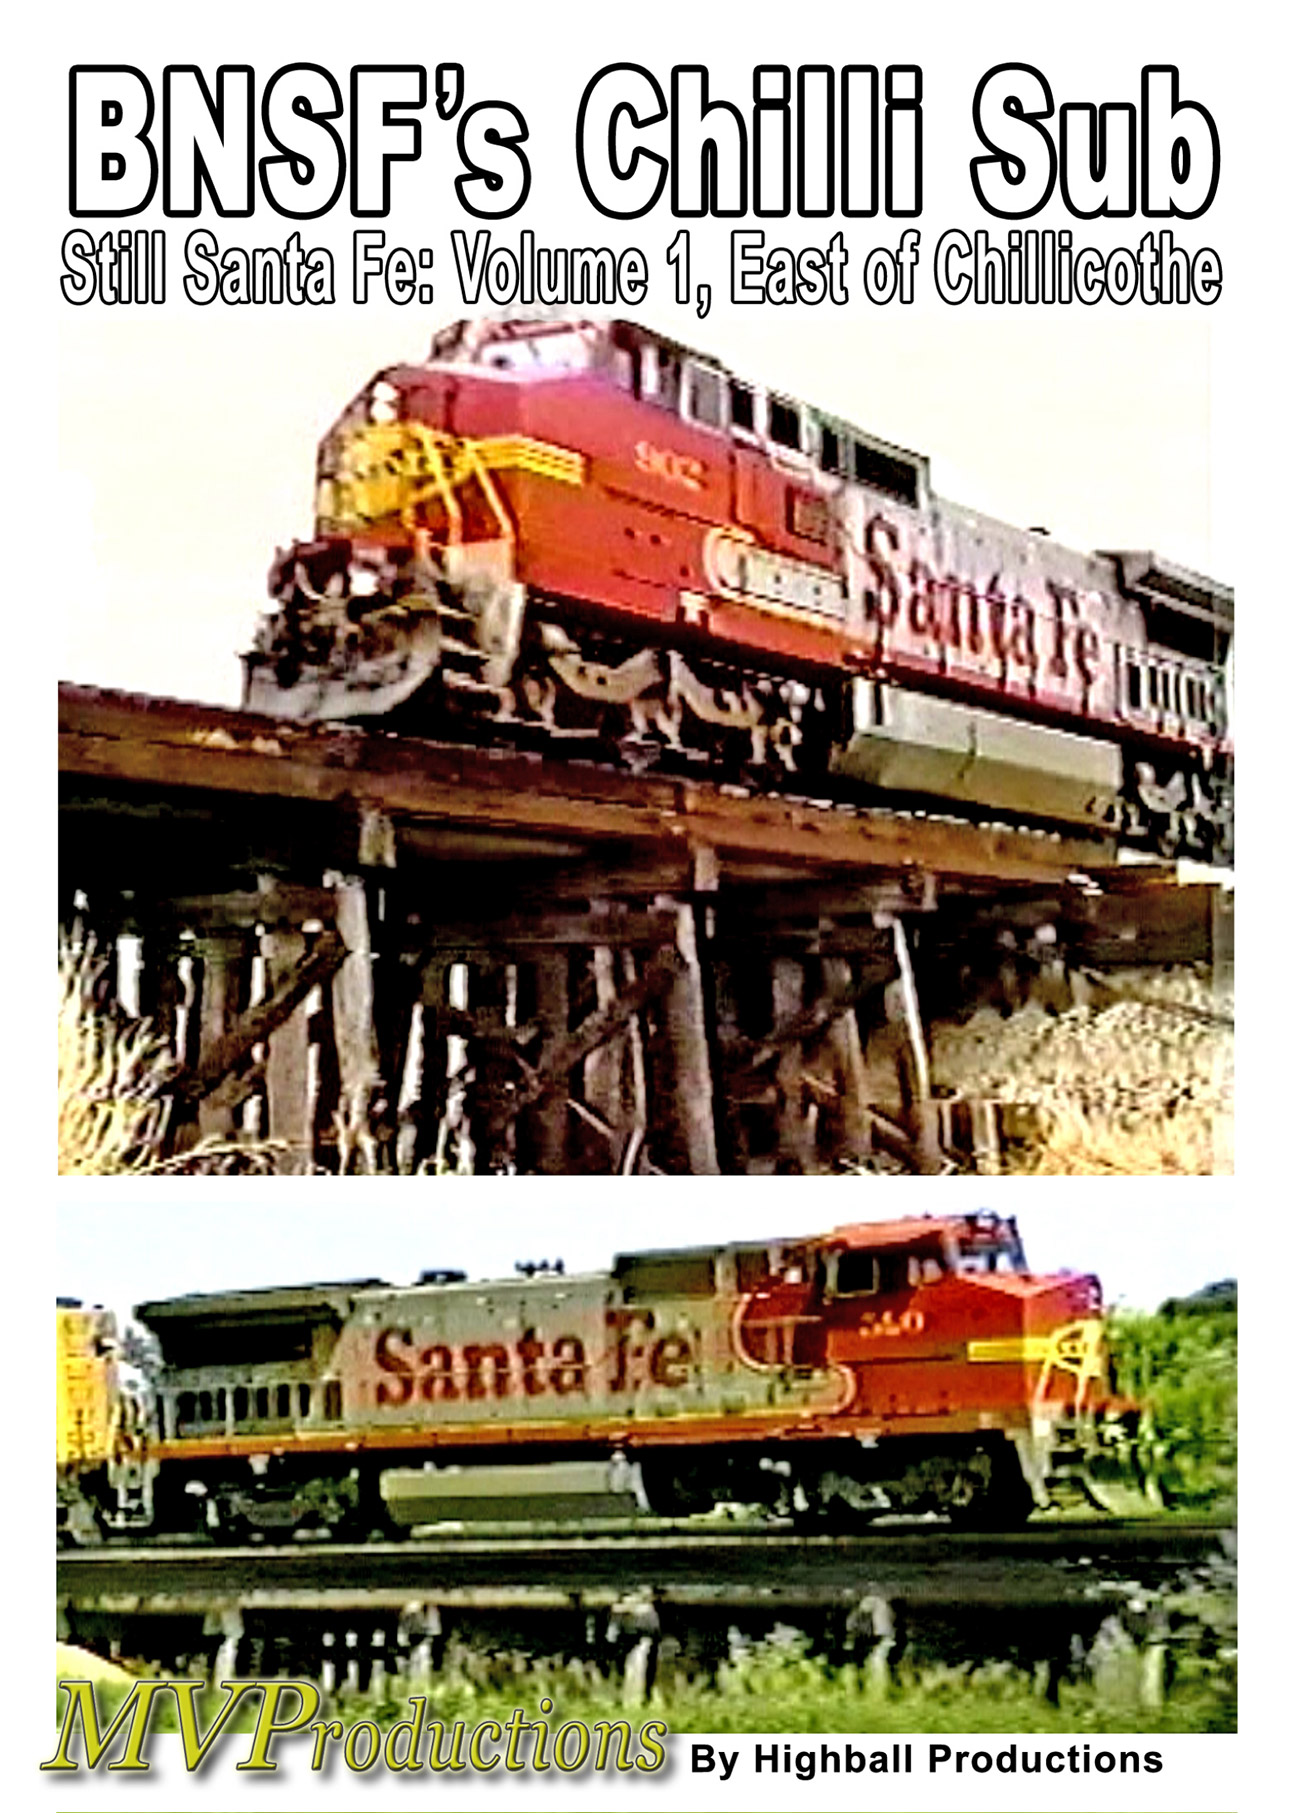 BNSF Chillicothe Sub: Still Santa Fe Volume 1, East of Chillicothe Train Video Midwest Video Productions MVCHIL1 601577880127